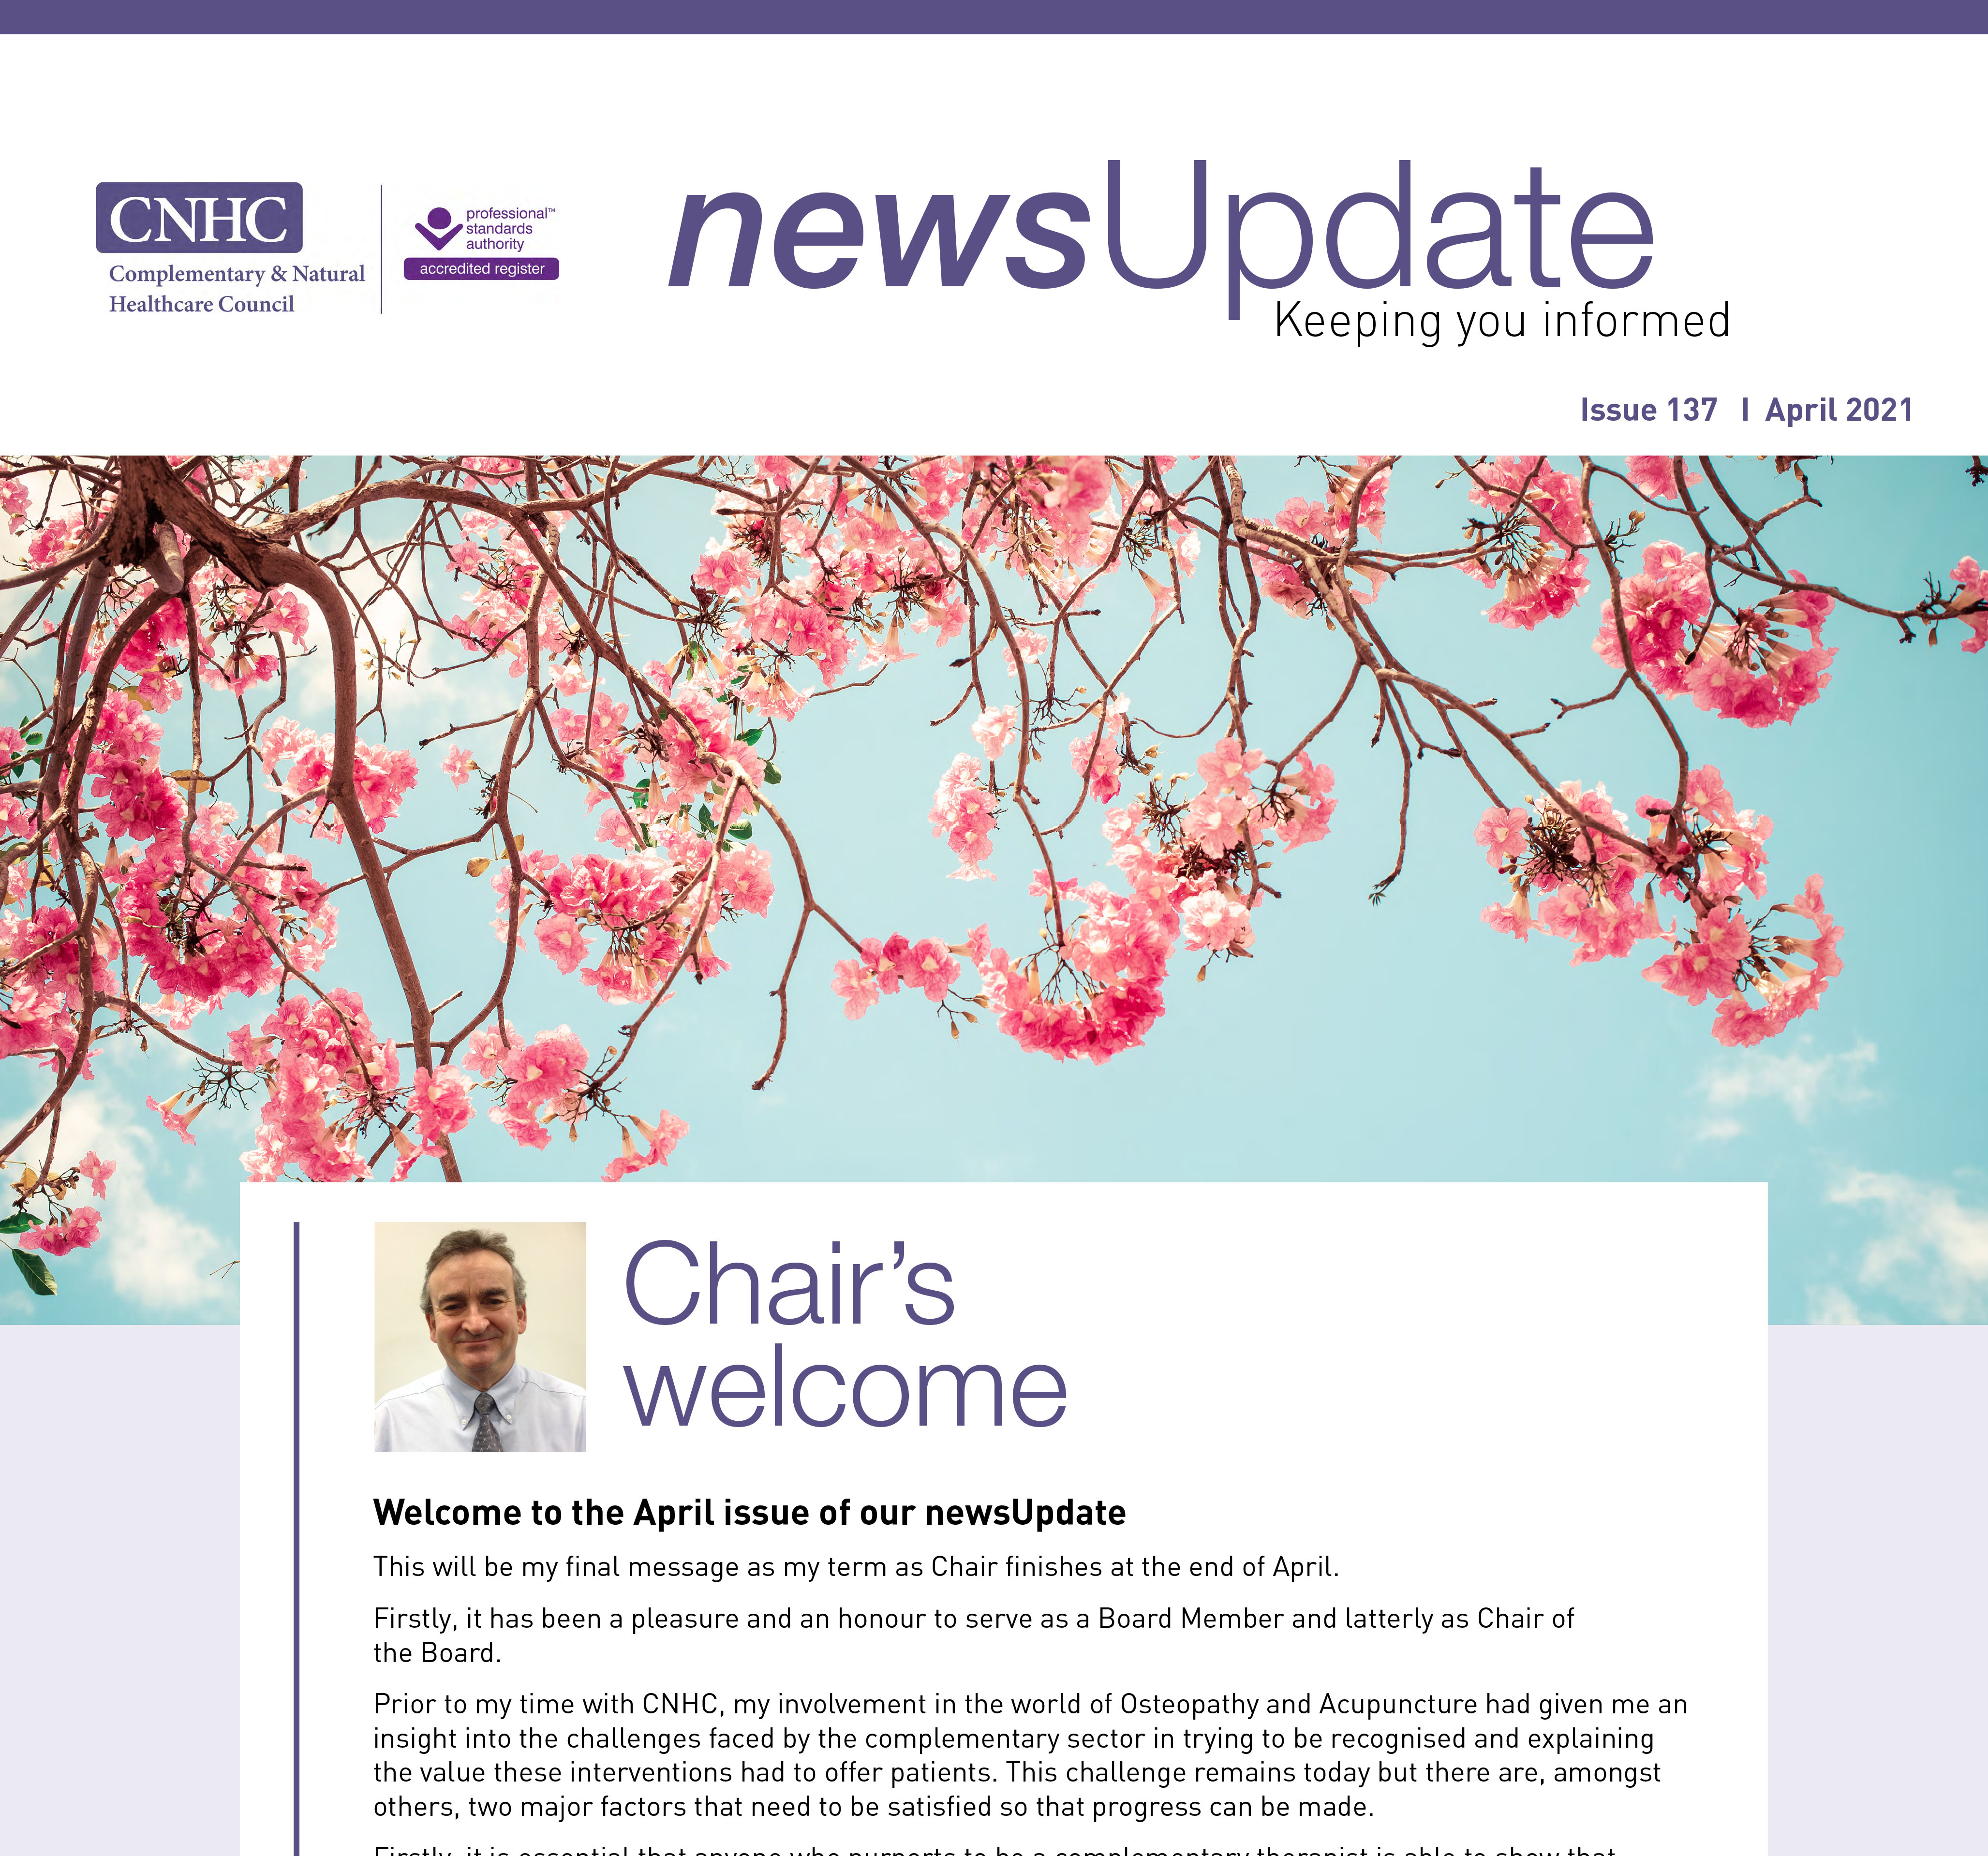 Our April newsUpdate is out now